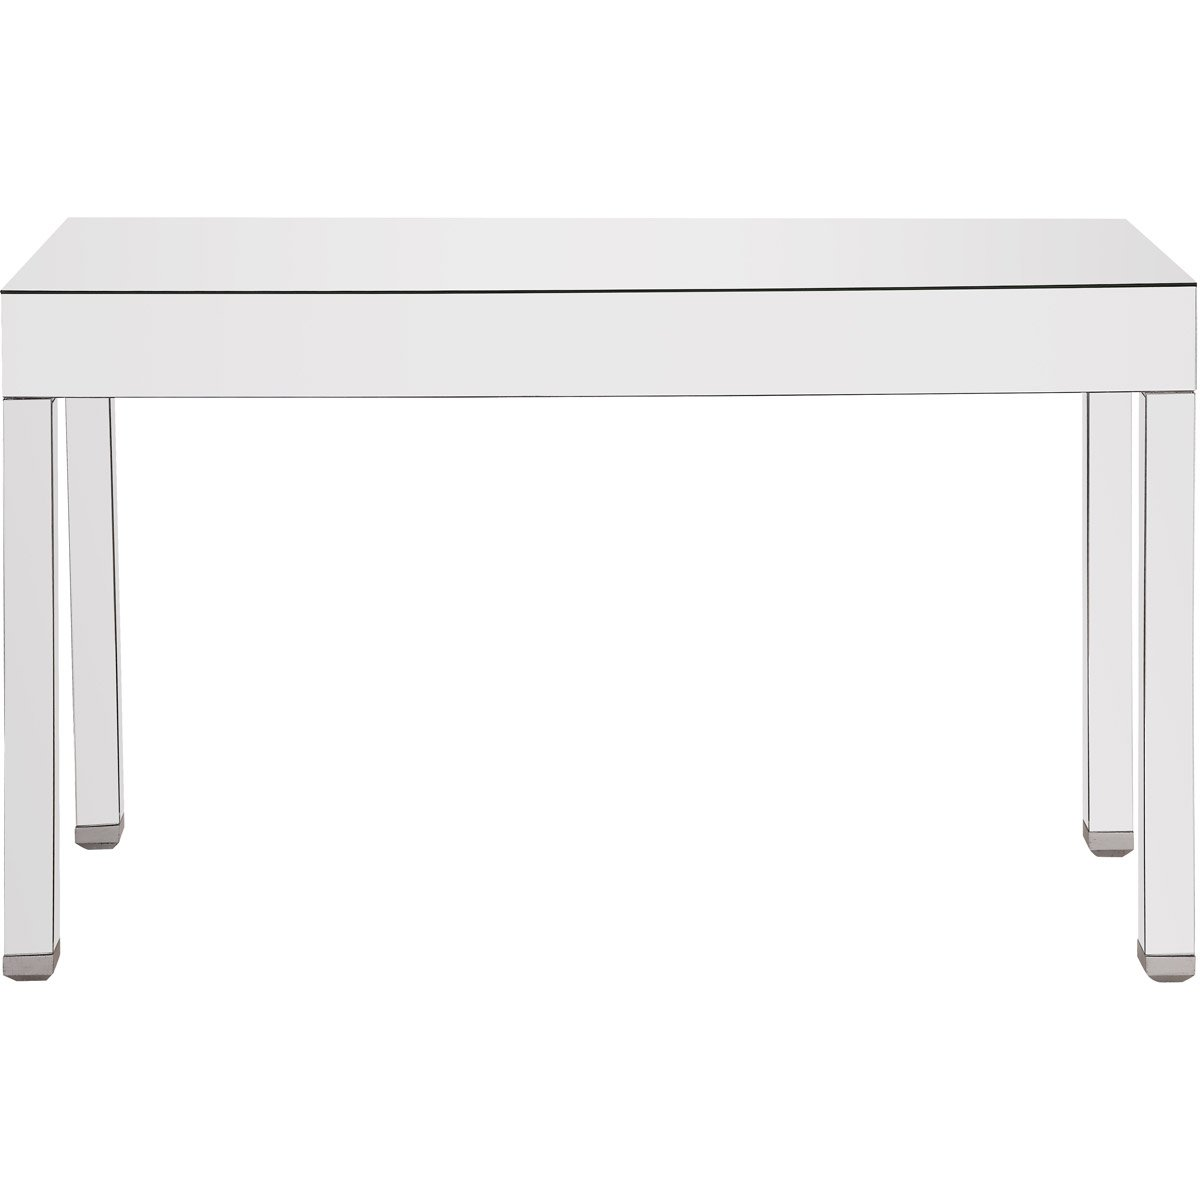 Contempo 56 X 34 Rectangle Table - Antique Silver Finish (Mf6-1031) Rectangle Table